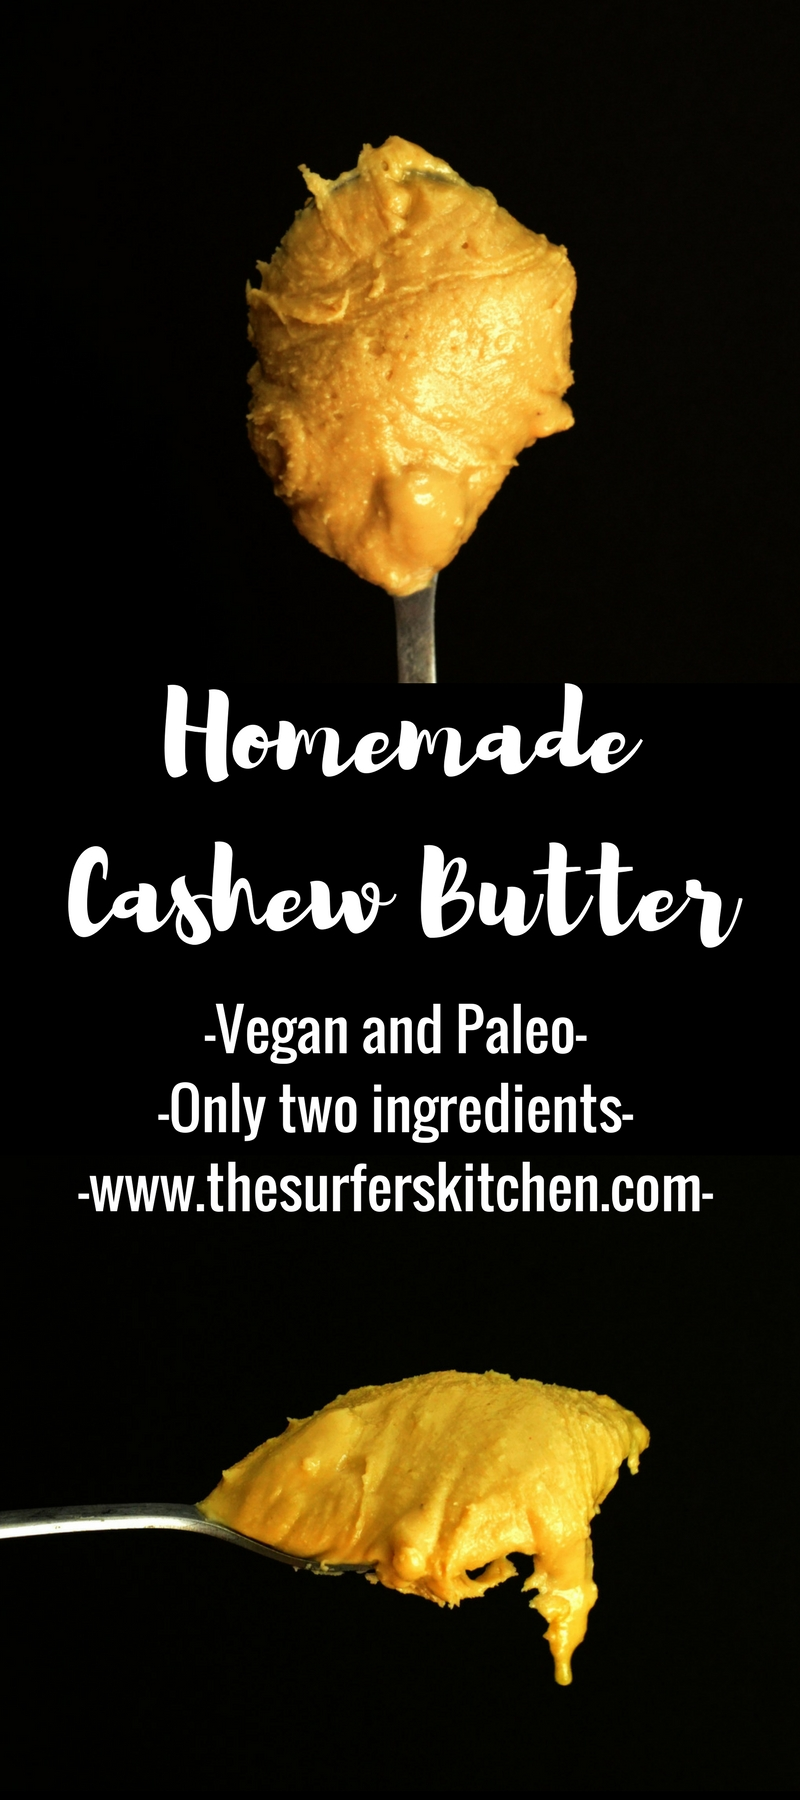 Homemade Cashew Butter | Who knew that cashew butter would be so useful to have around the house and so easy to make? Two ingredients and 15 minutes for your own batch. | www.thesurferskitchen.com